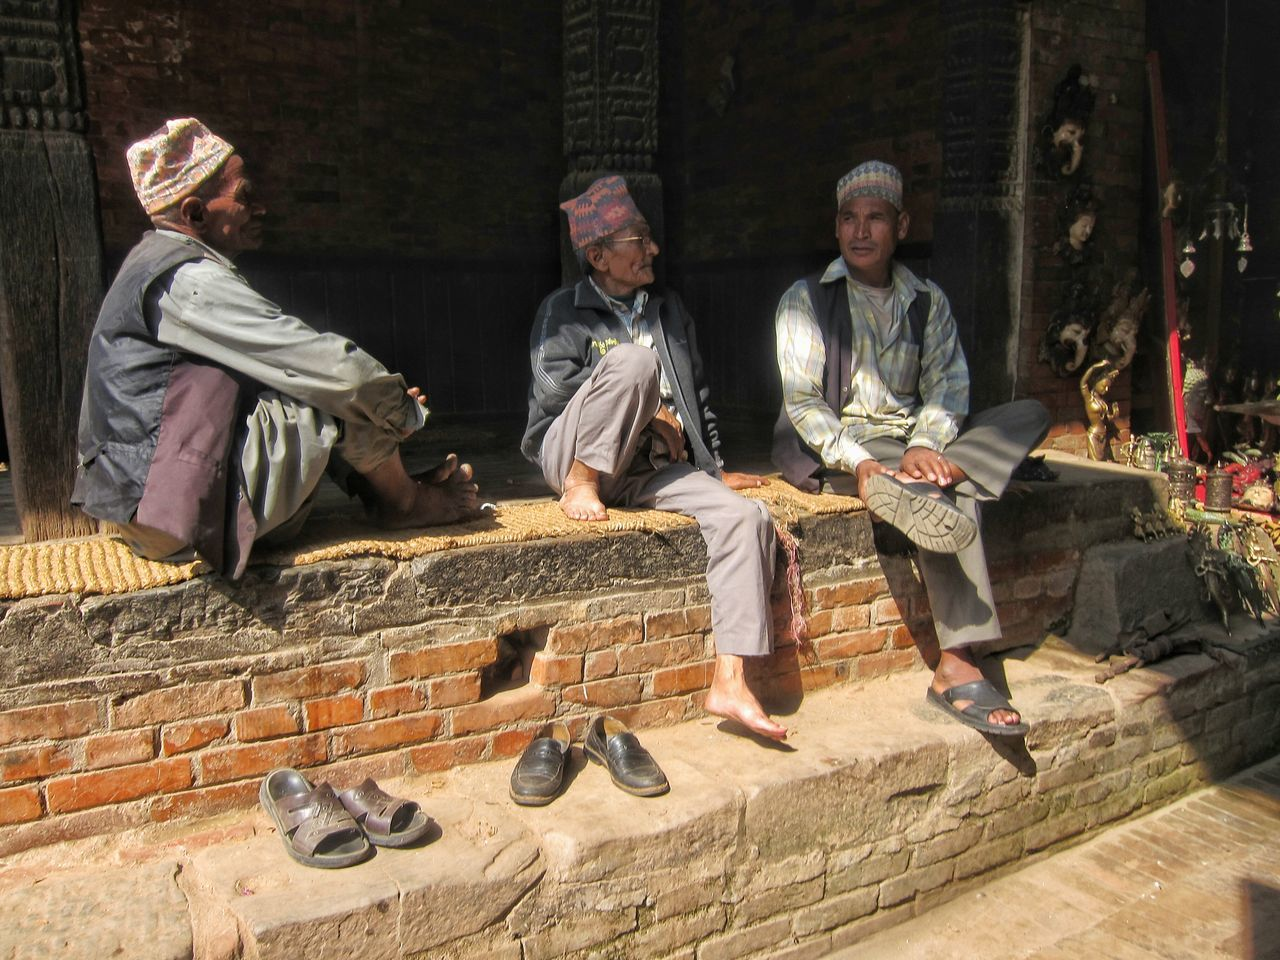 Nepali  Men Newari Chatting Leisure Culture Lifestyle Traditional Clothing Bhaktapur Feel The Journey Rural Scenes Miles Away Original Experiences Kathmandu Nepal People Together People And Places Way Of Life Unesco World Heritage